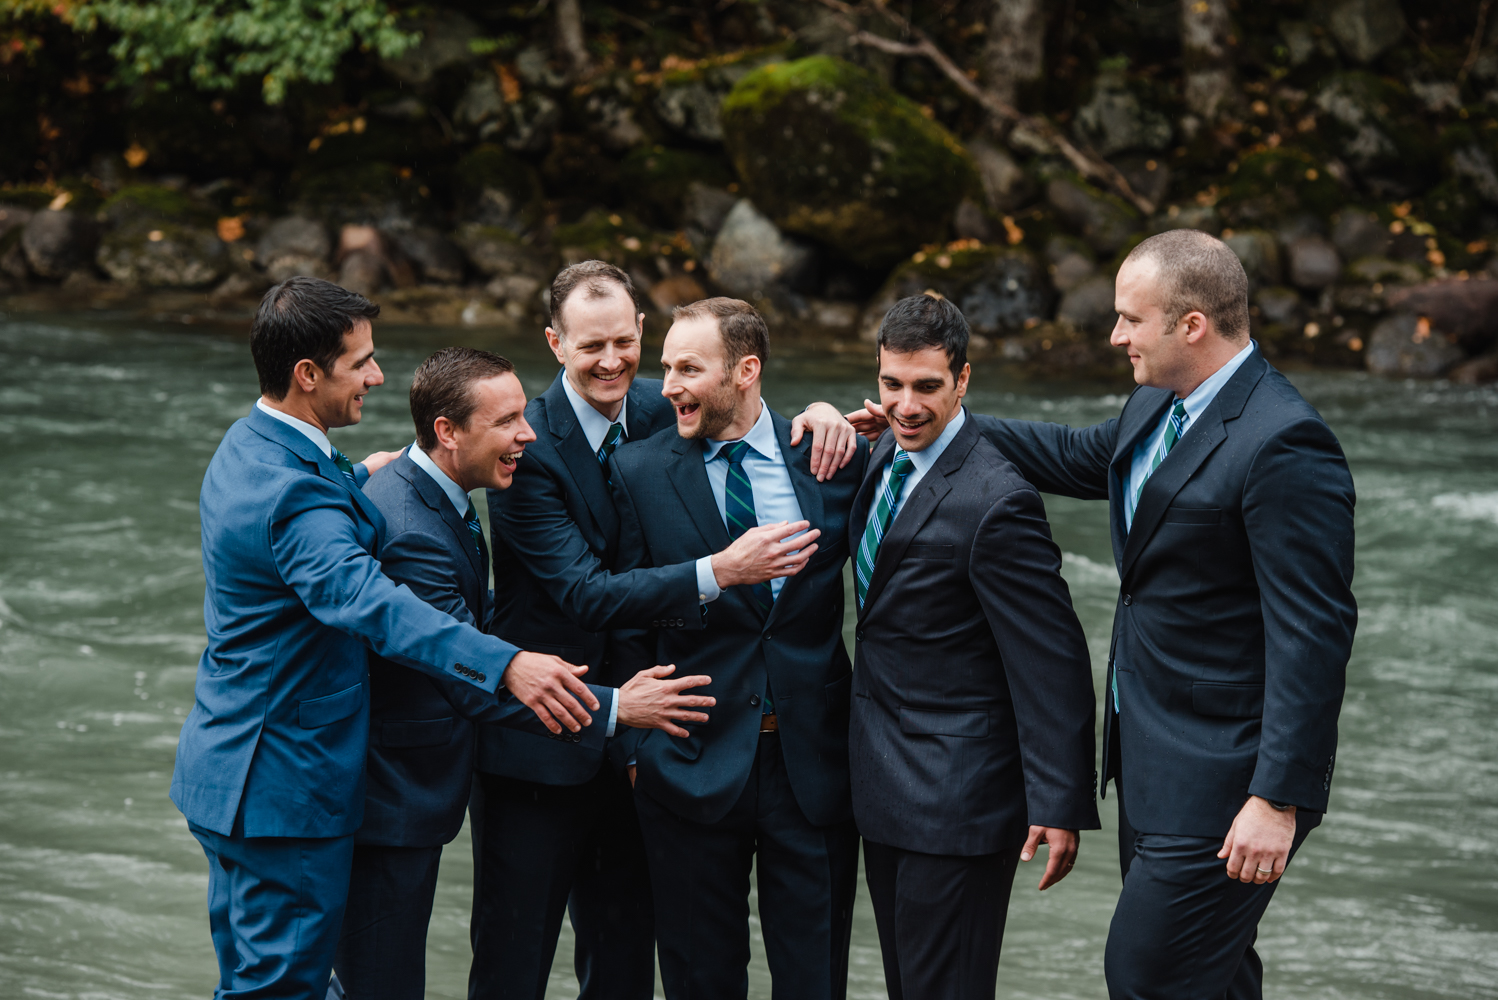 Squamish Wedding Photographer44.jpg